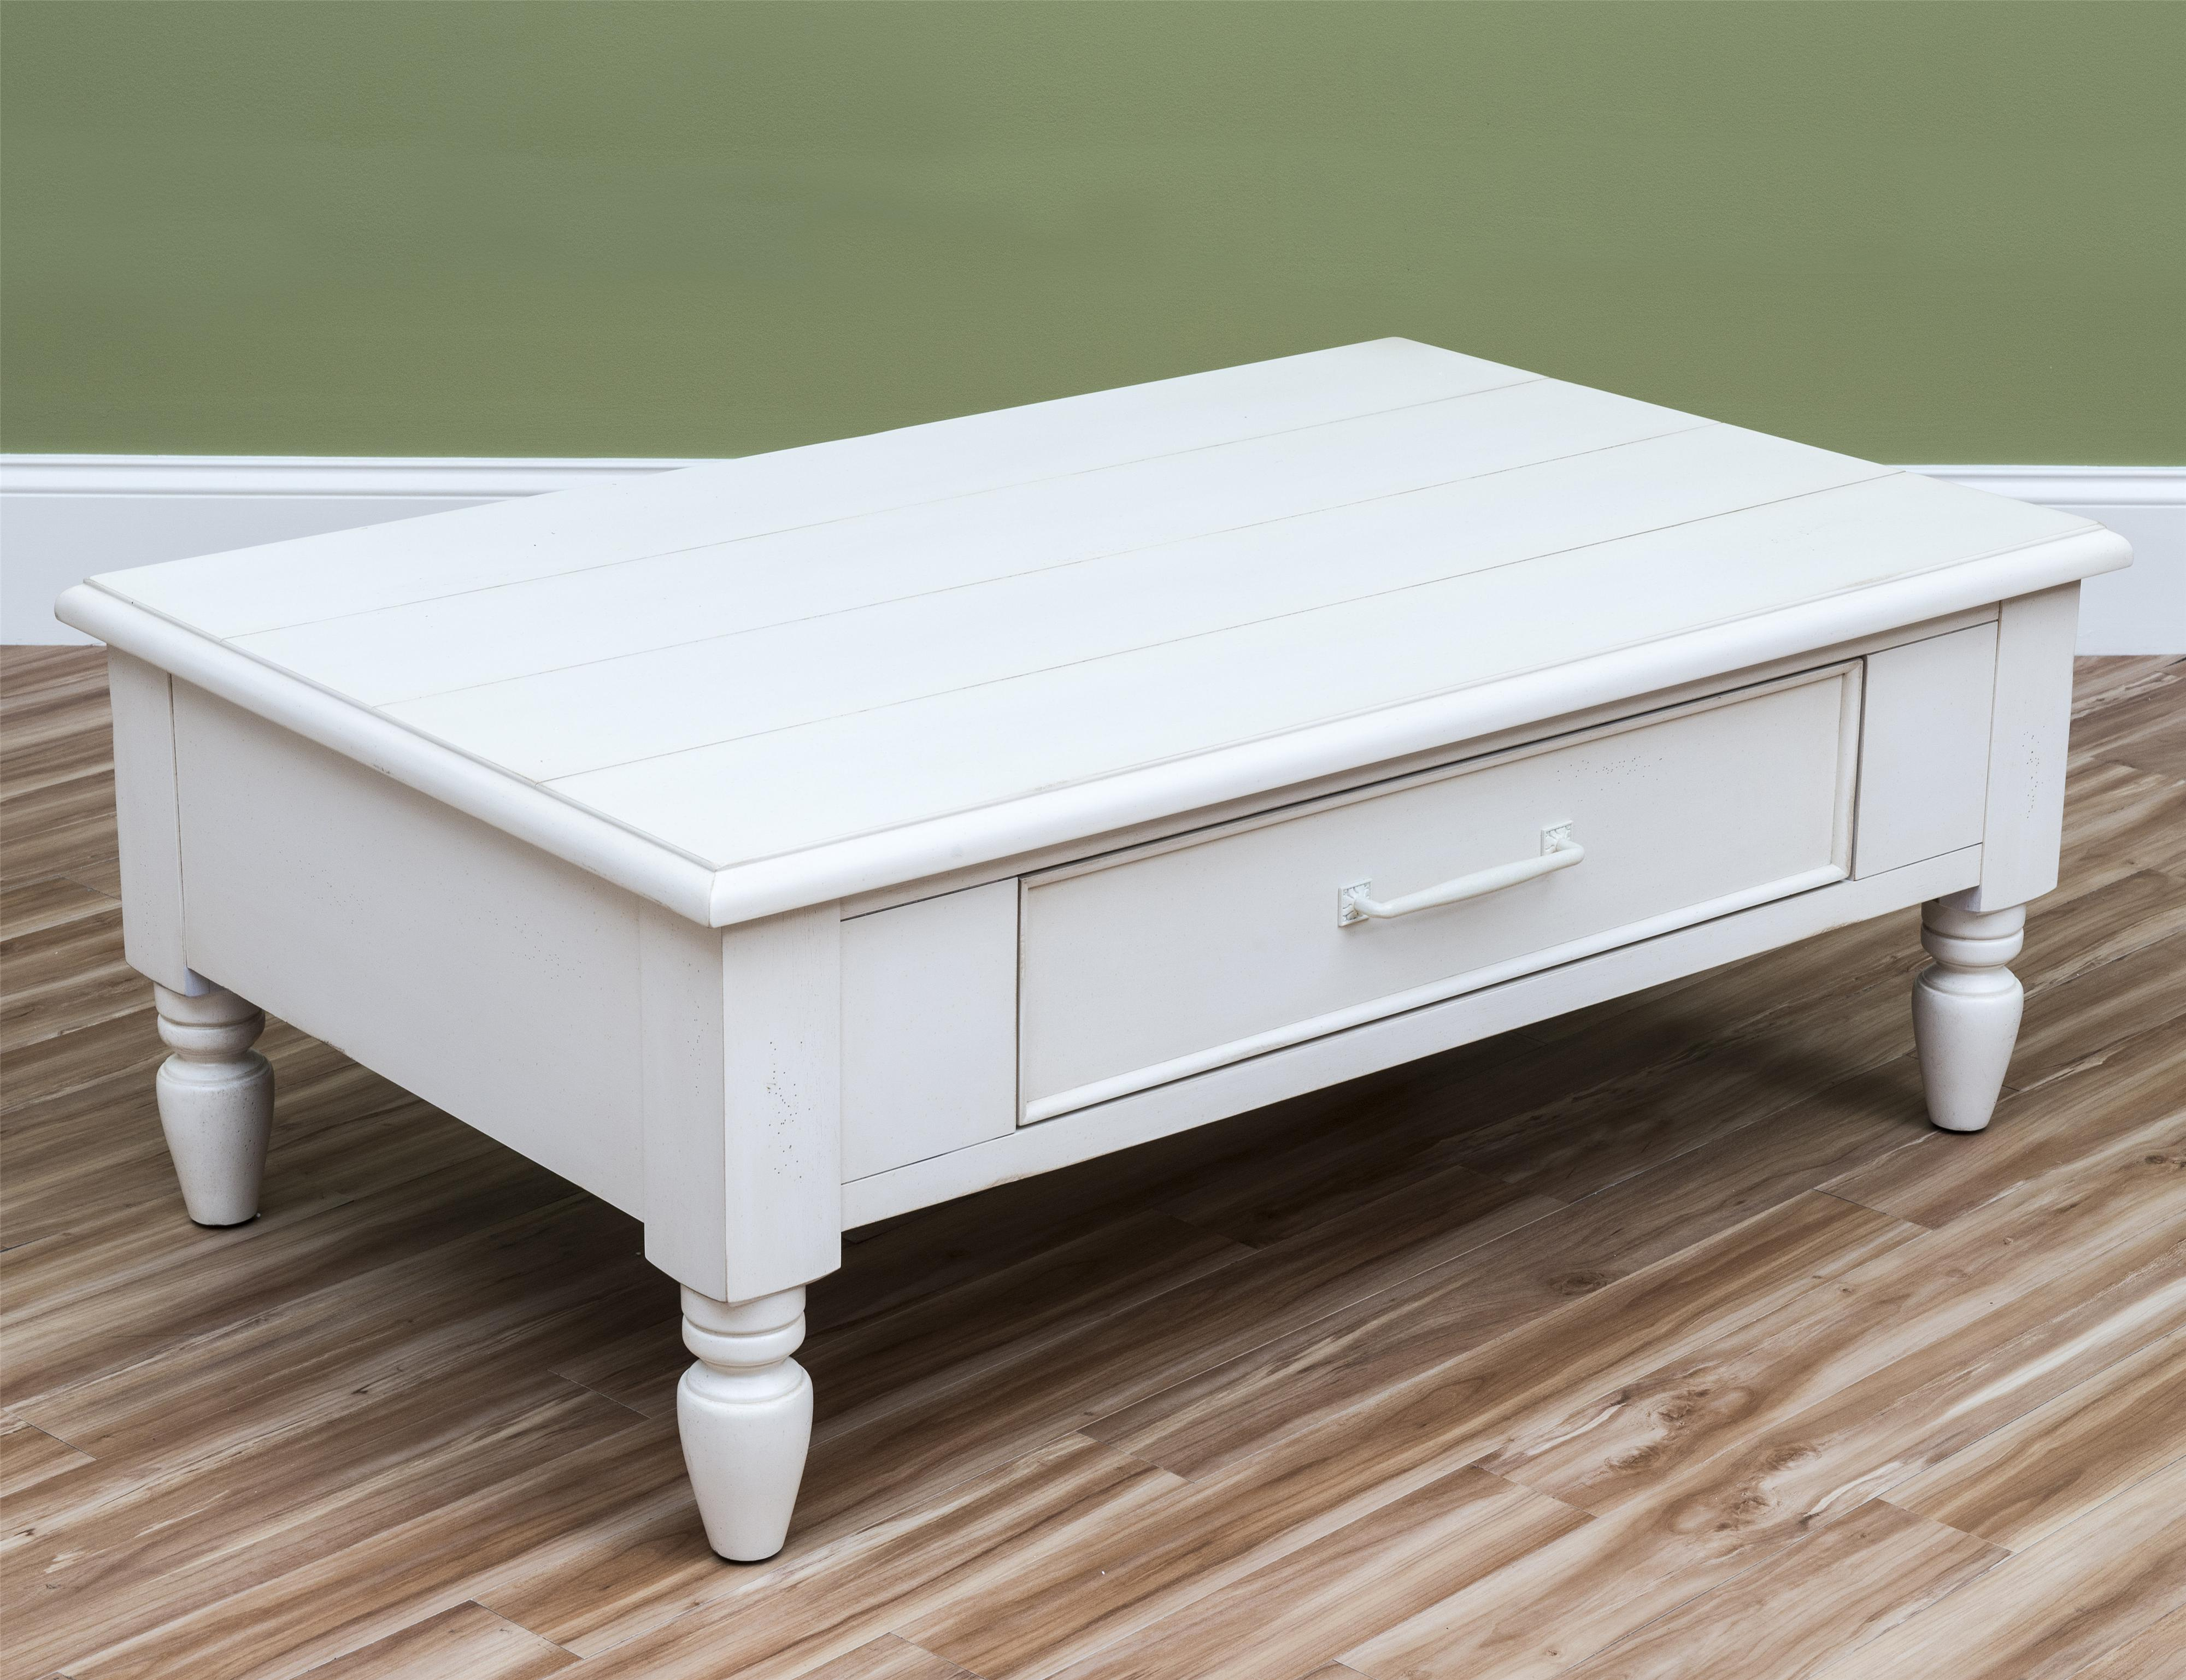 Easton Collection Sea Breeze Beachcomber-White Cocktail Table - Item Number: 424-819 CTBL